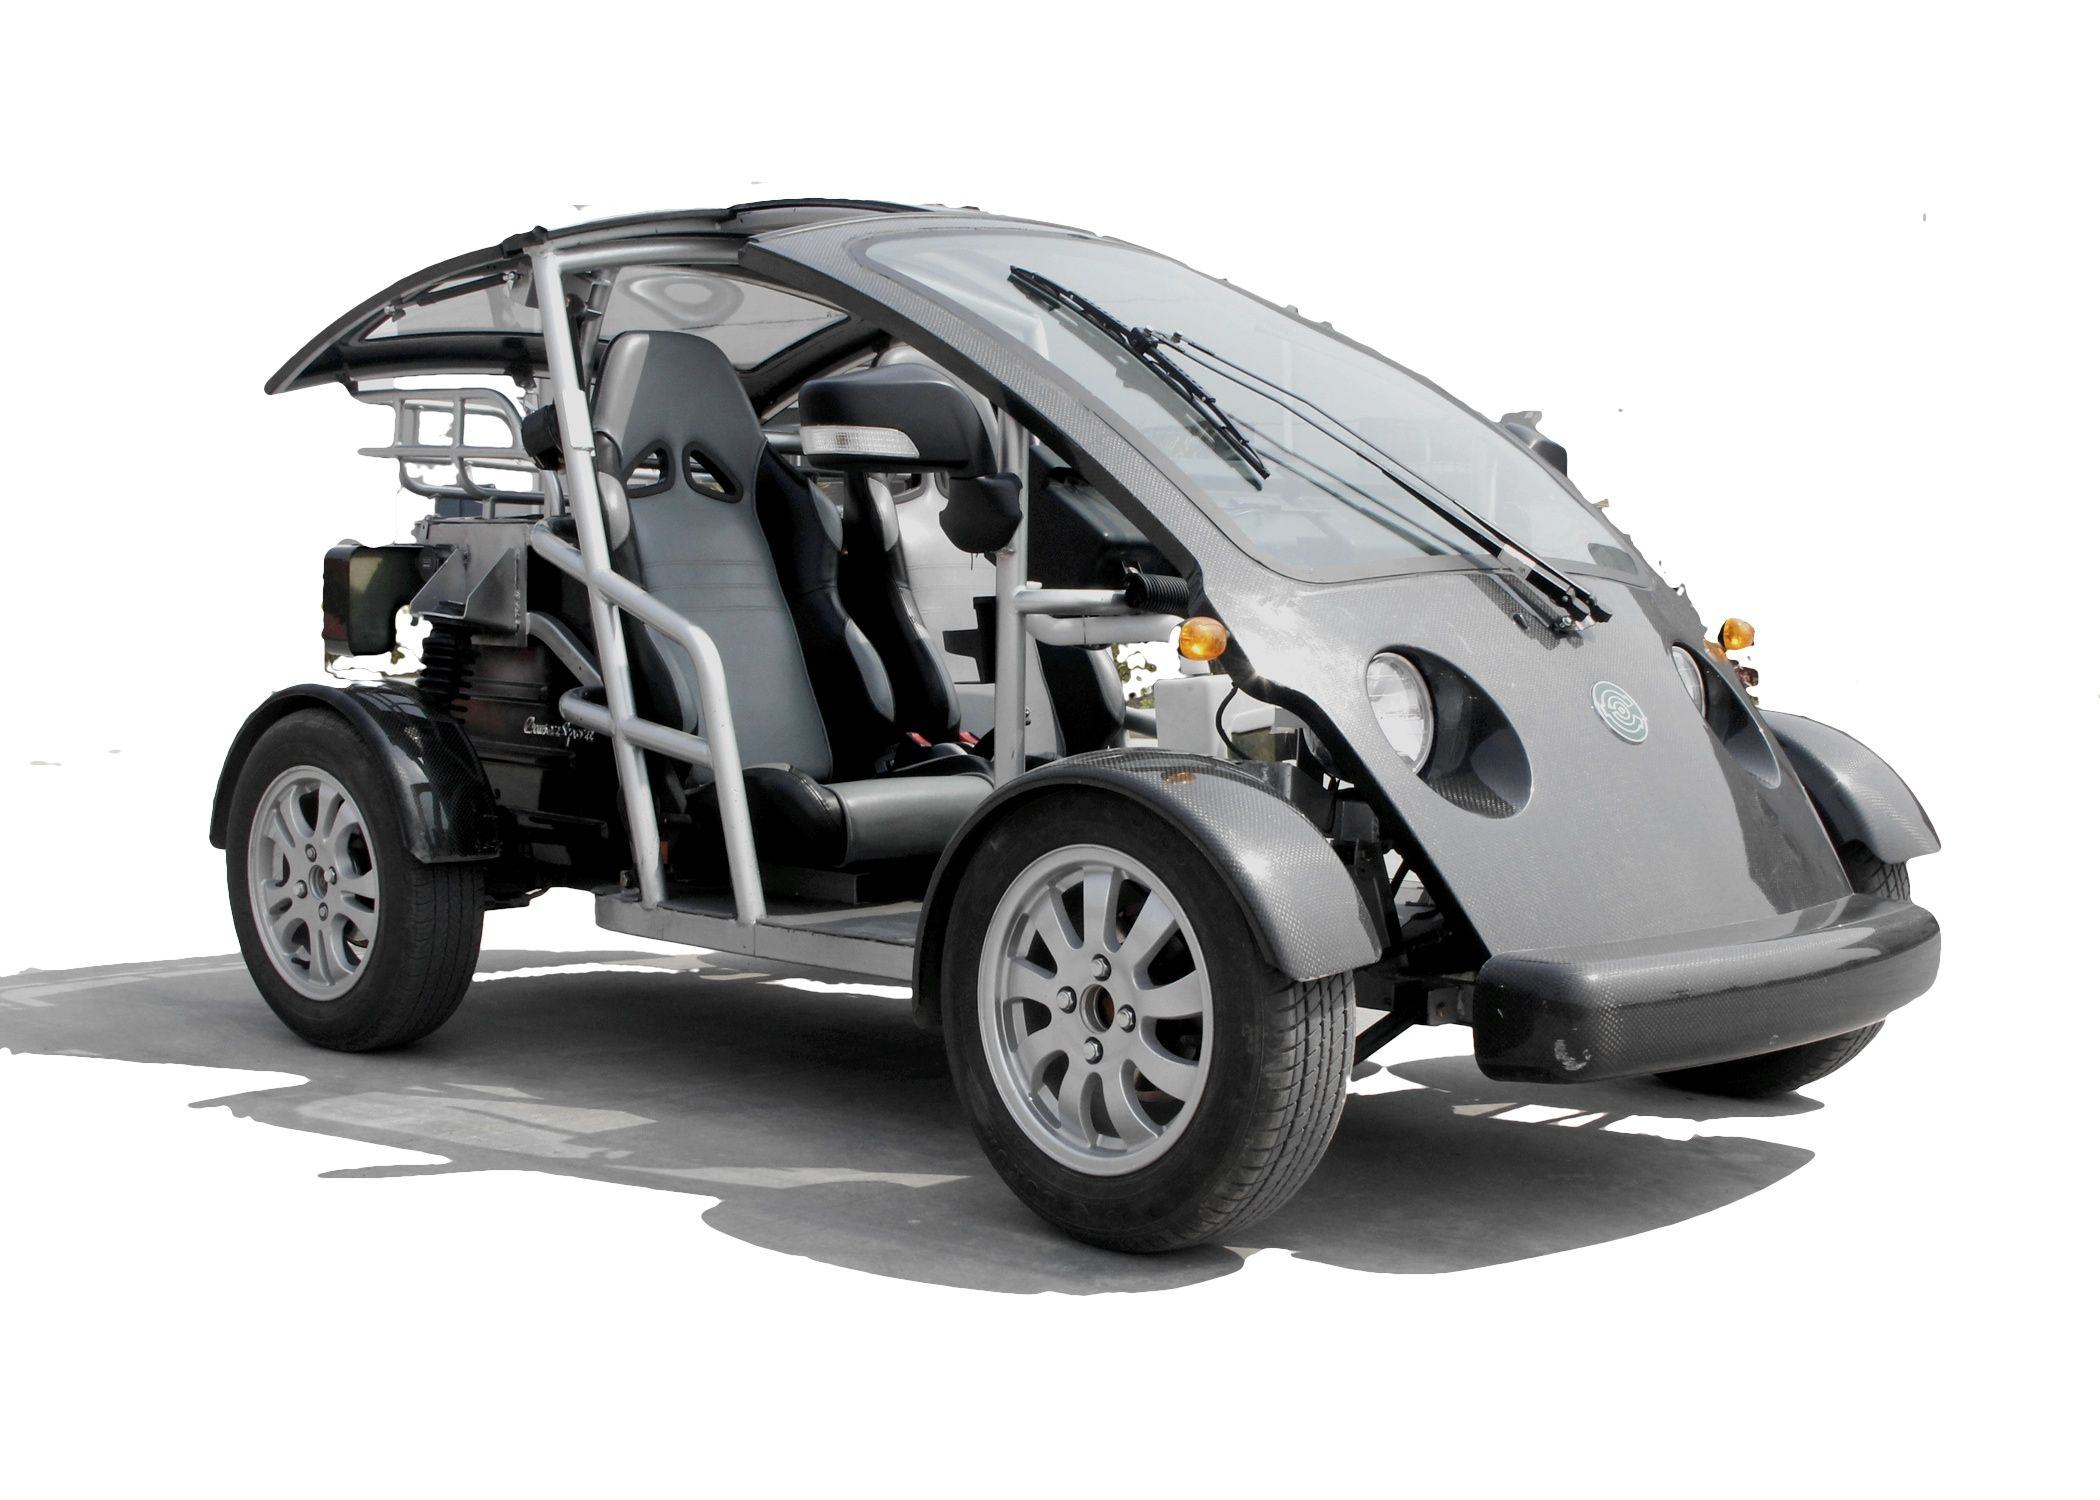 The exciting brand new street legal cruser sport elec car amp golf cart - Ecocruise Sport Nev At Florida Golf Cart And Tomorrow Electric Vehicles